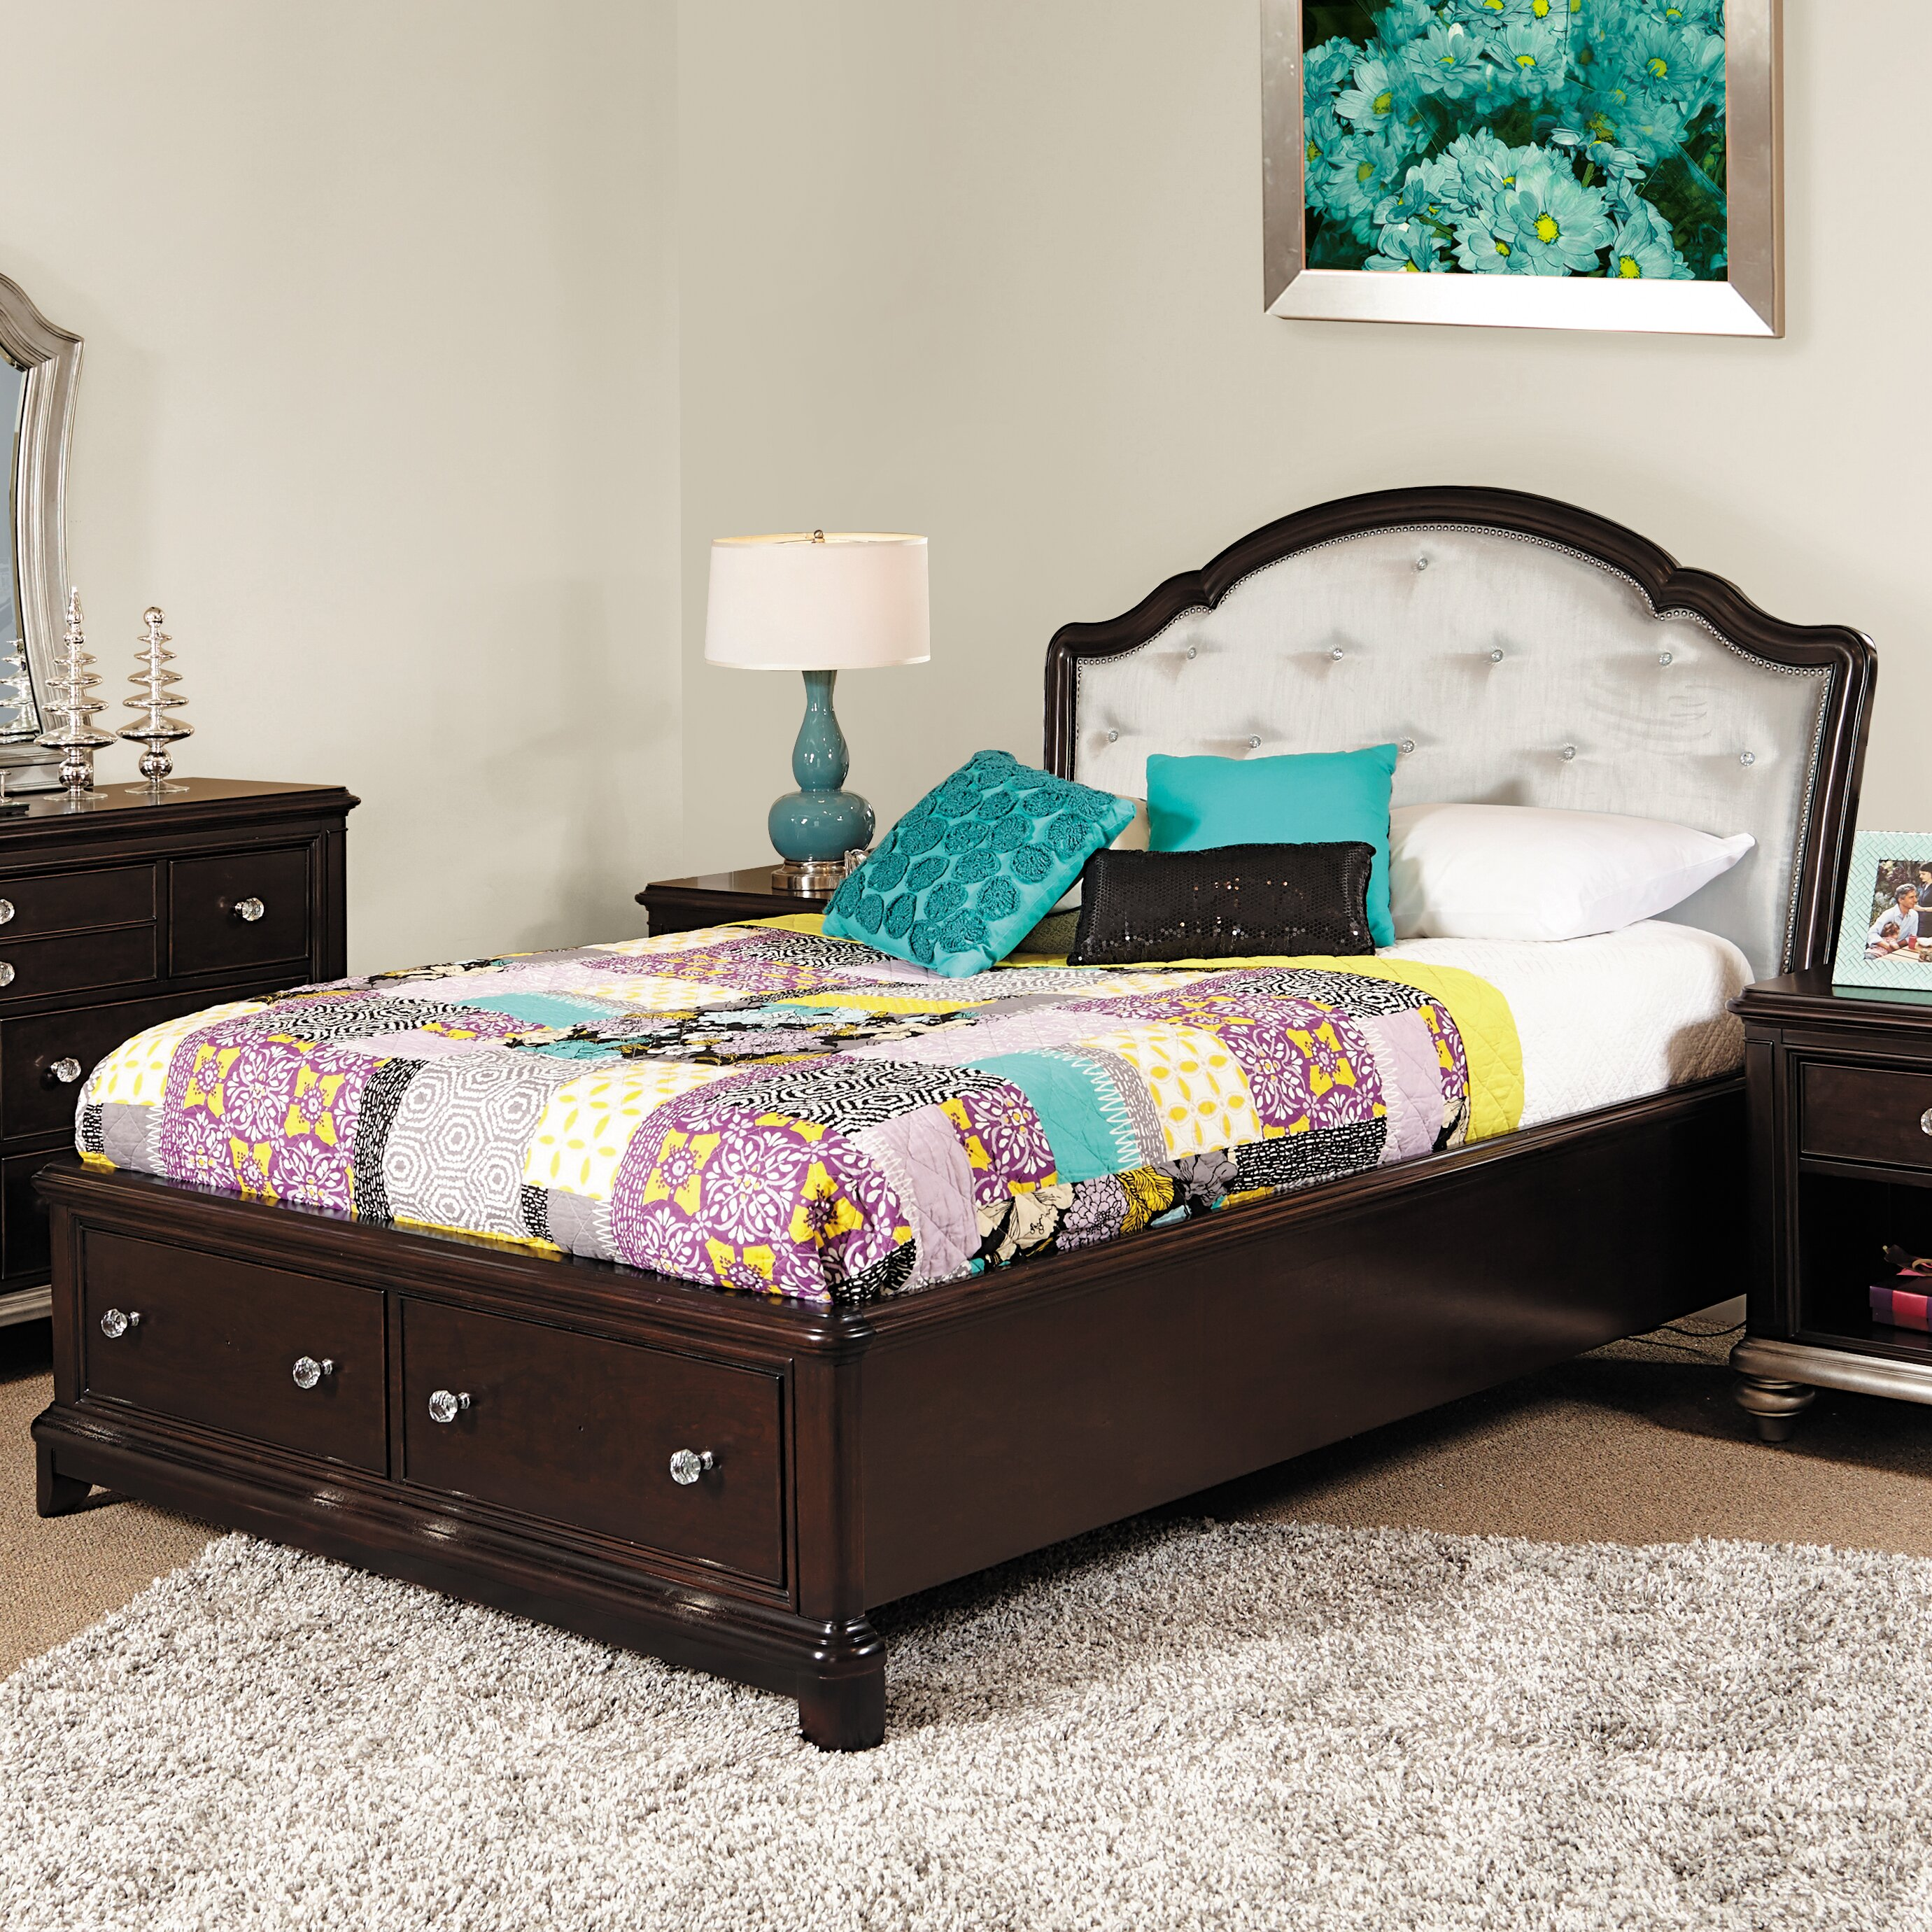 Glam Bedroom Design Photo By Wayfair: Samuel Lawrence Girls' Glam Panel Bed With Storage